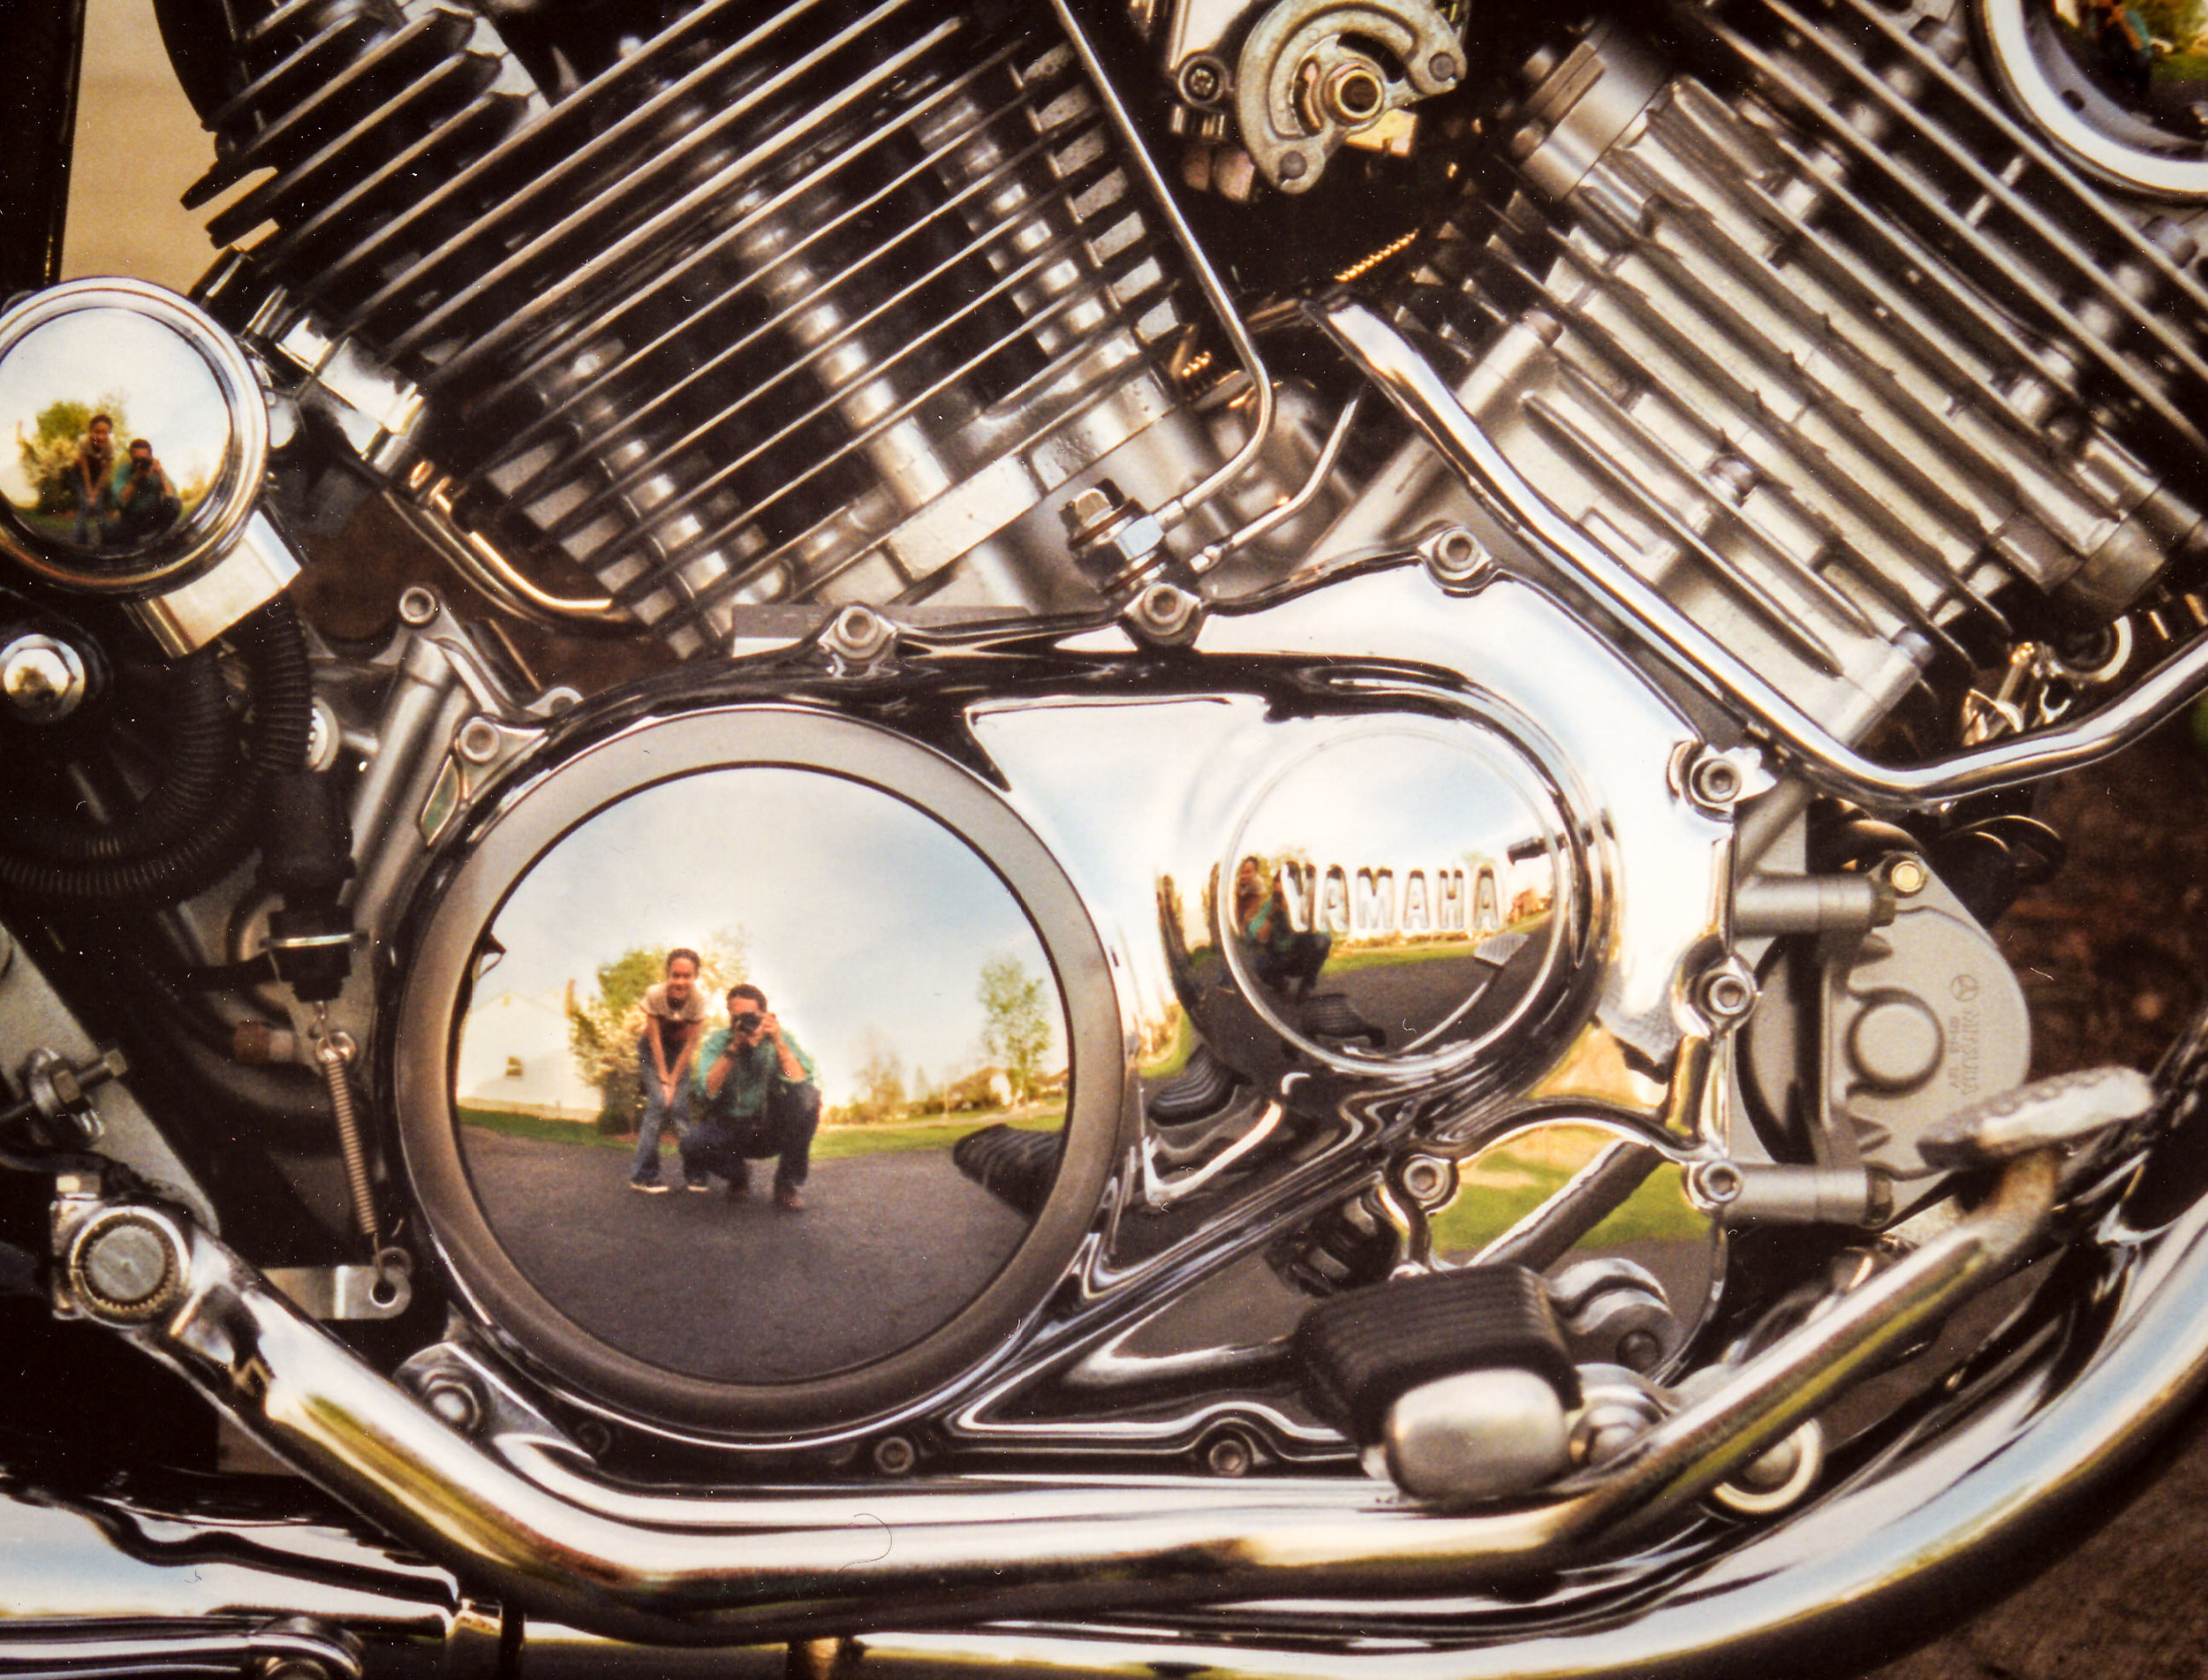 Amy and me reflected in the chromed crankcase of my last Yamaha